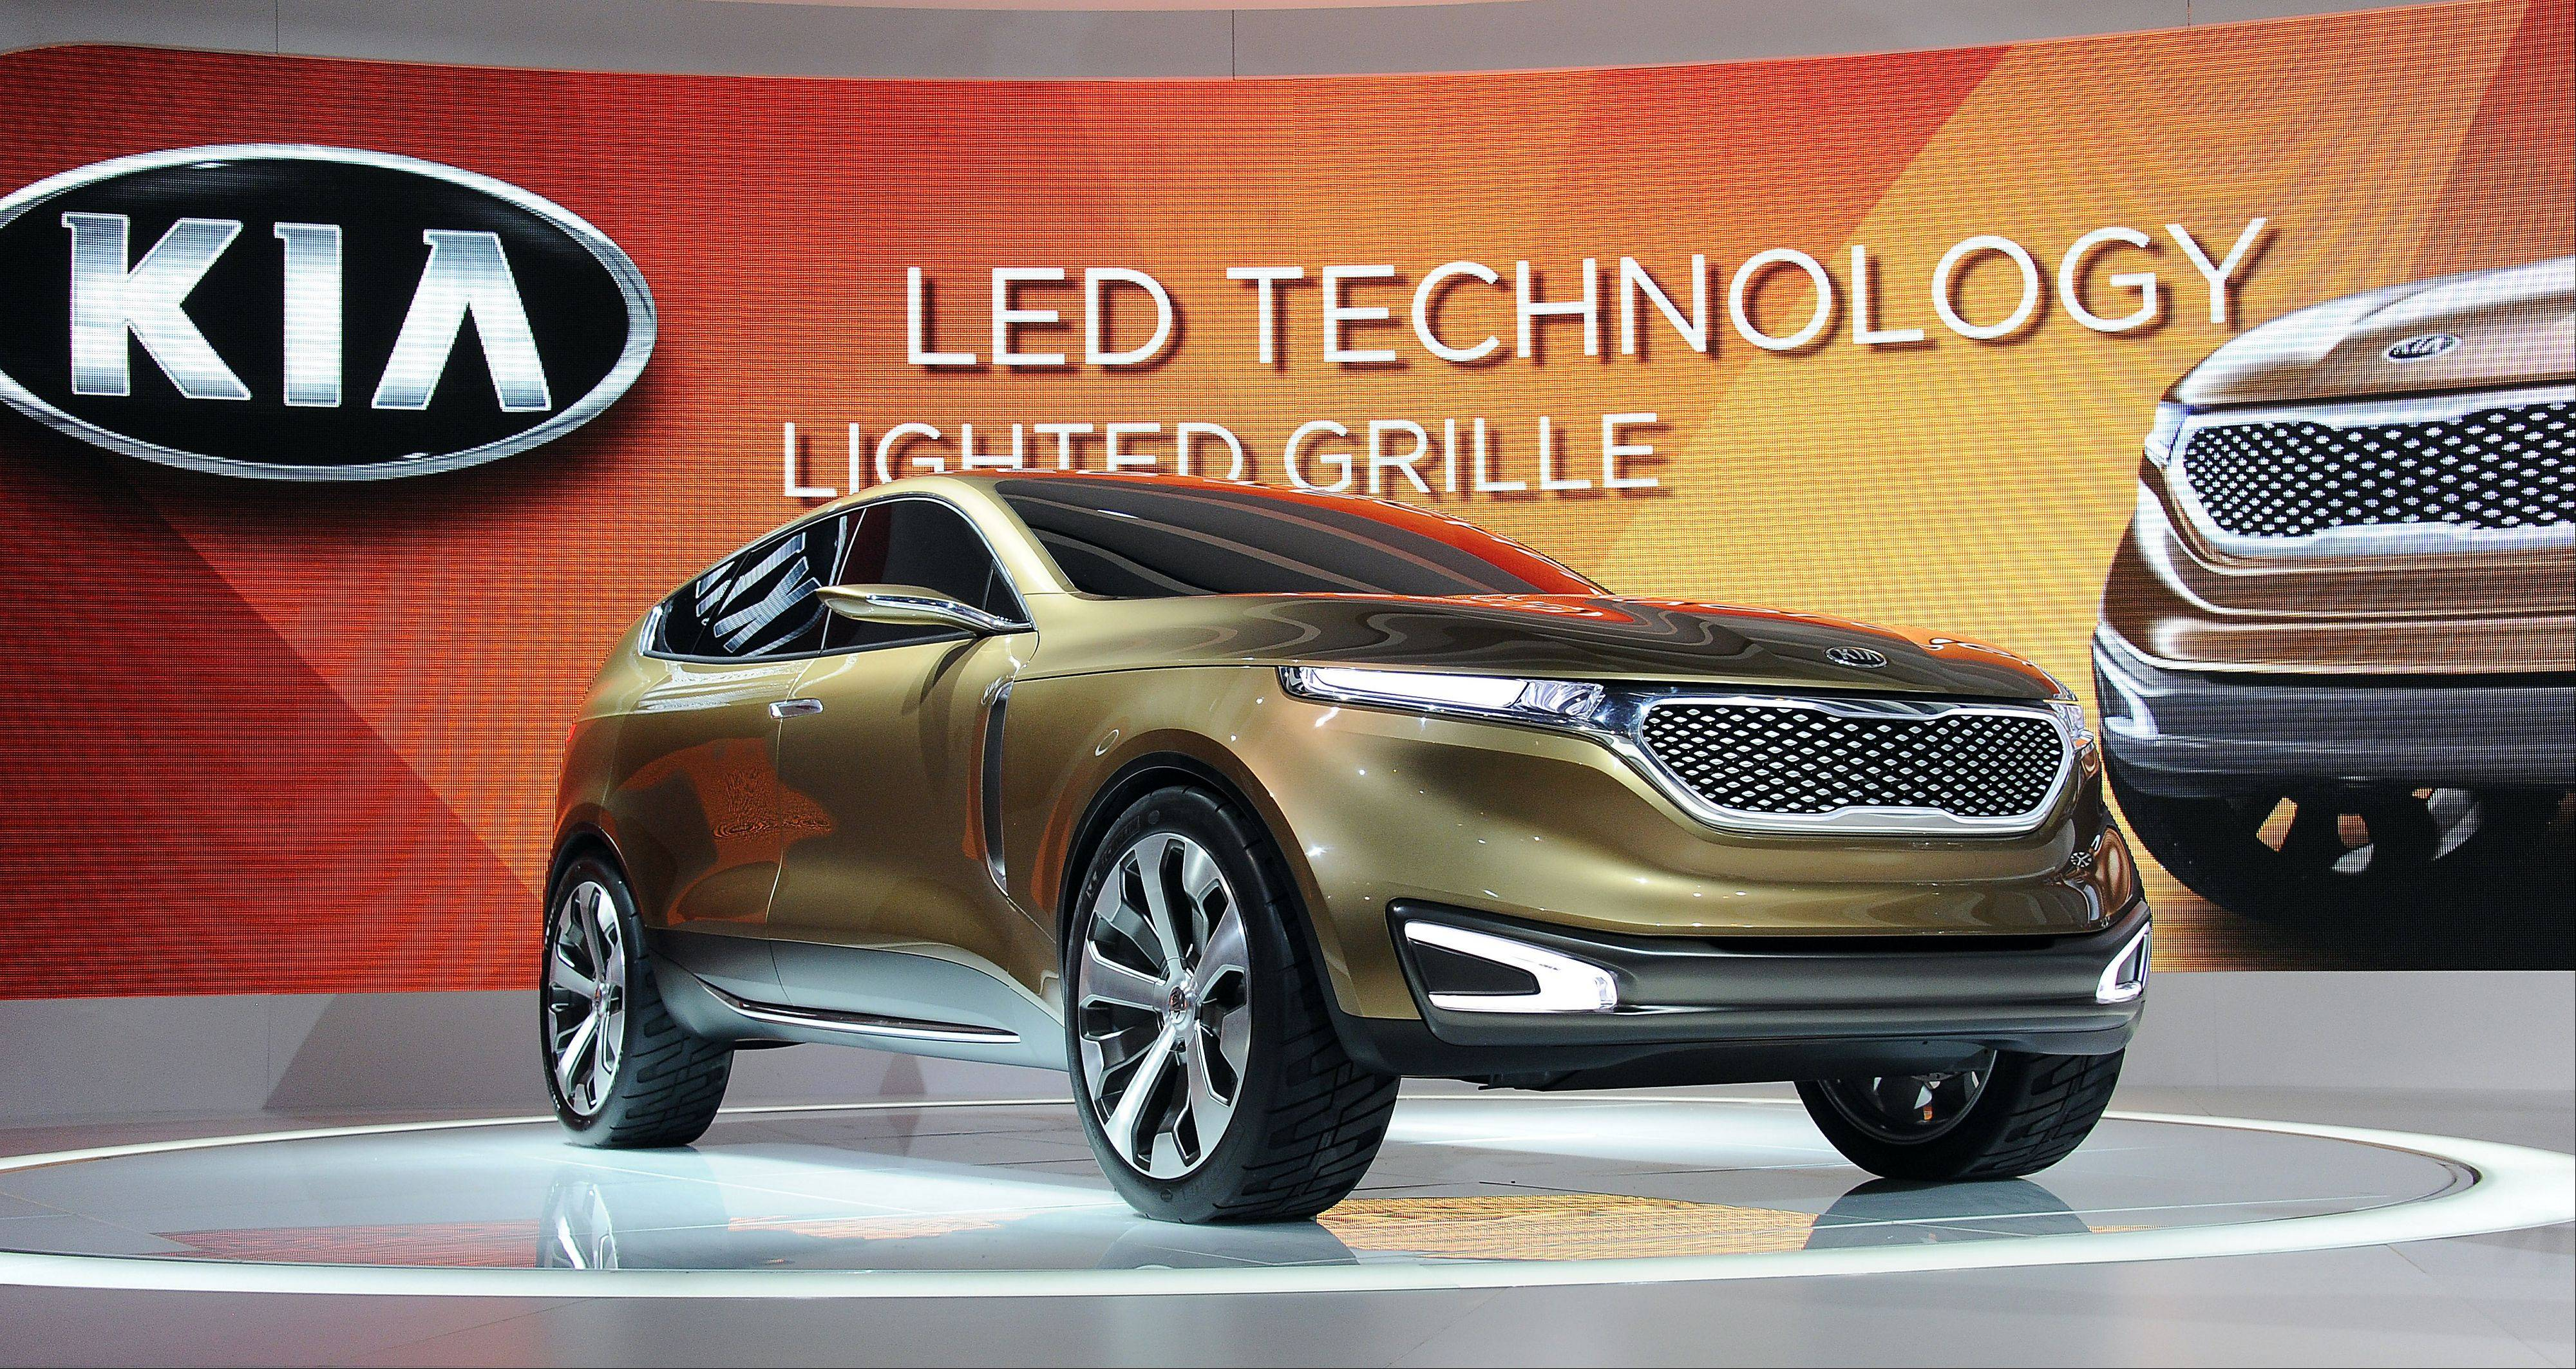 Kia's latest creation, the Cross GT.